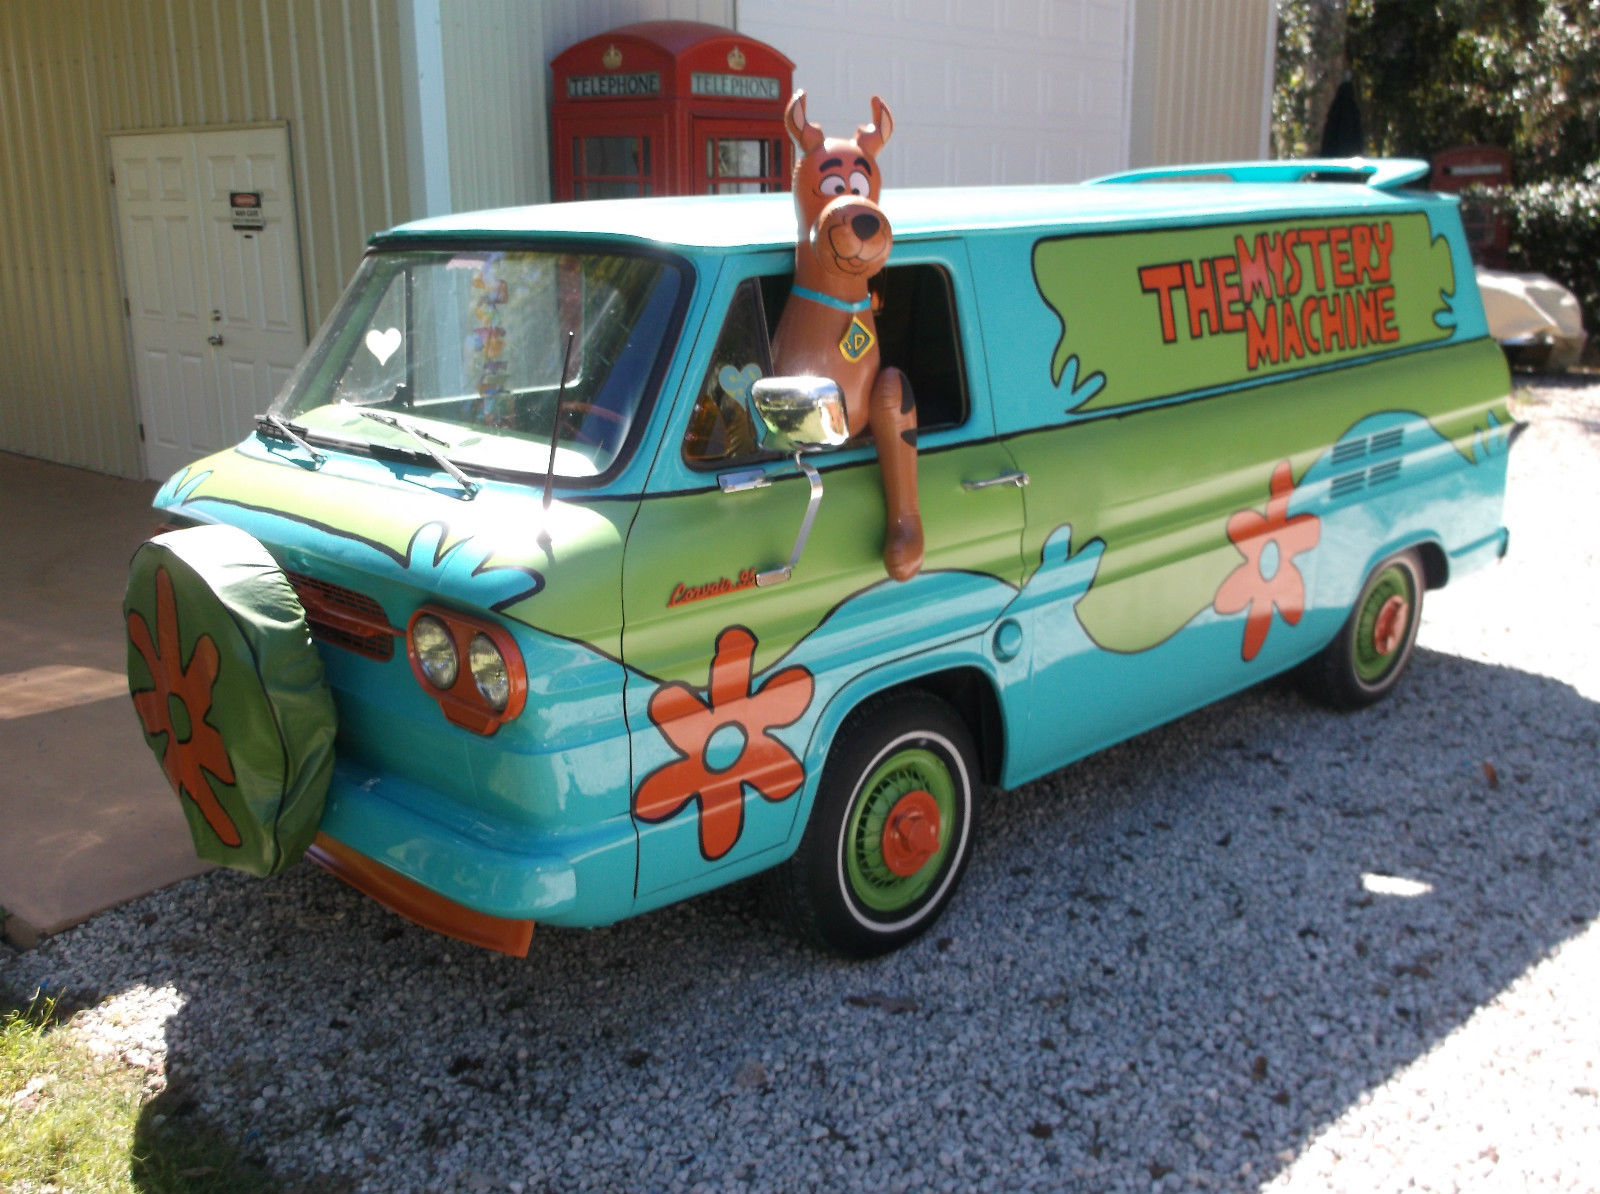 1961 chevy corvair 95 van scooby doo mystery machine rust free show car. Black Bedroom Furniture Sets. Home Design Ideas